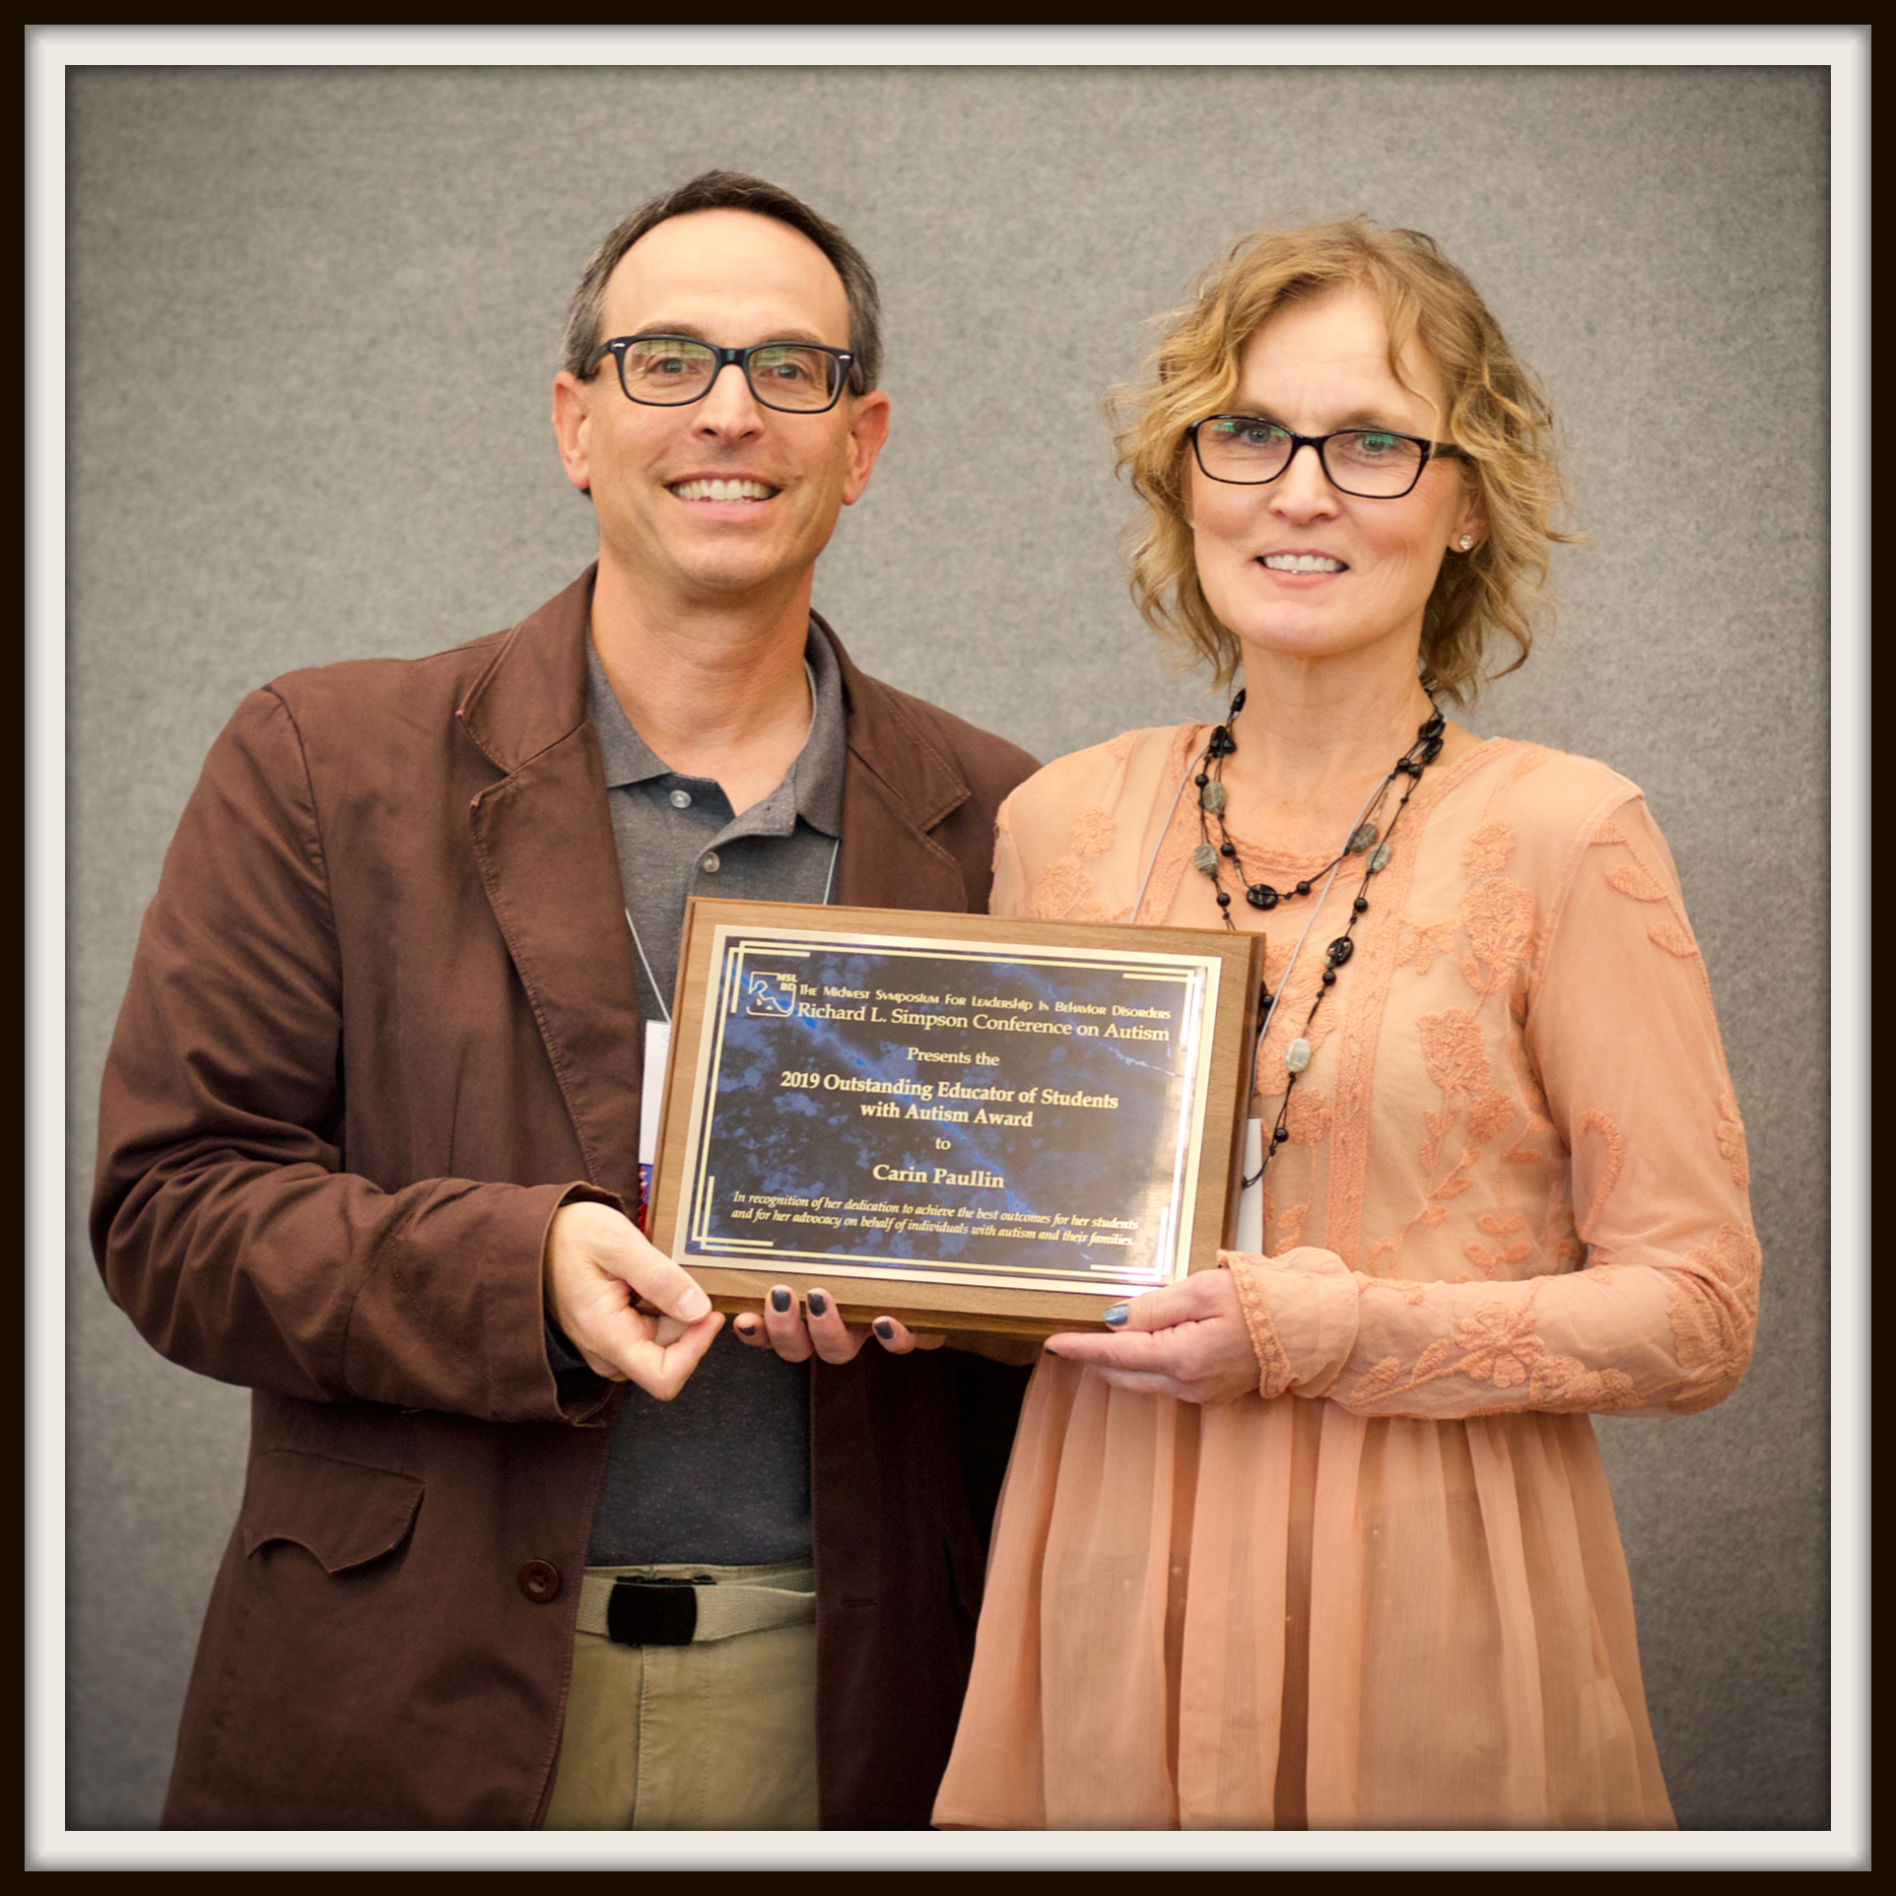 Outstanding Educator of Students with Autism Award